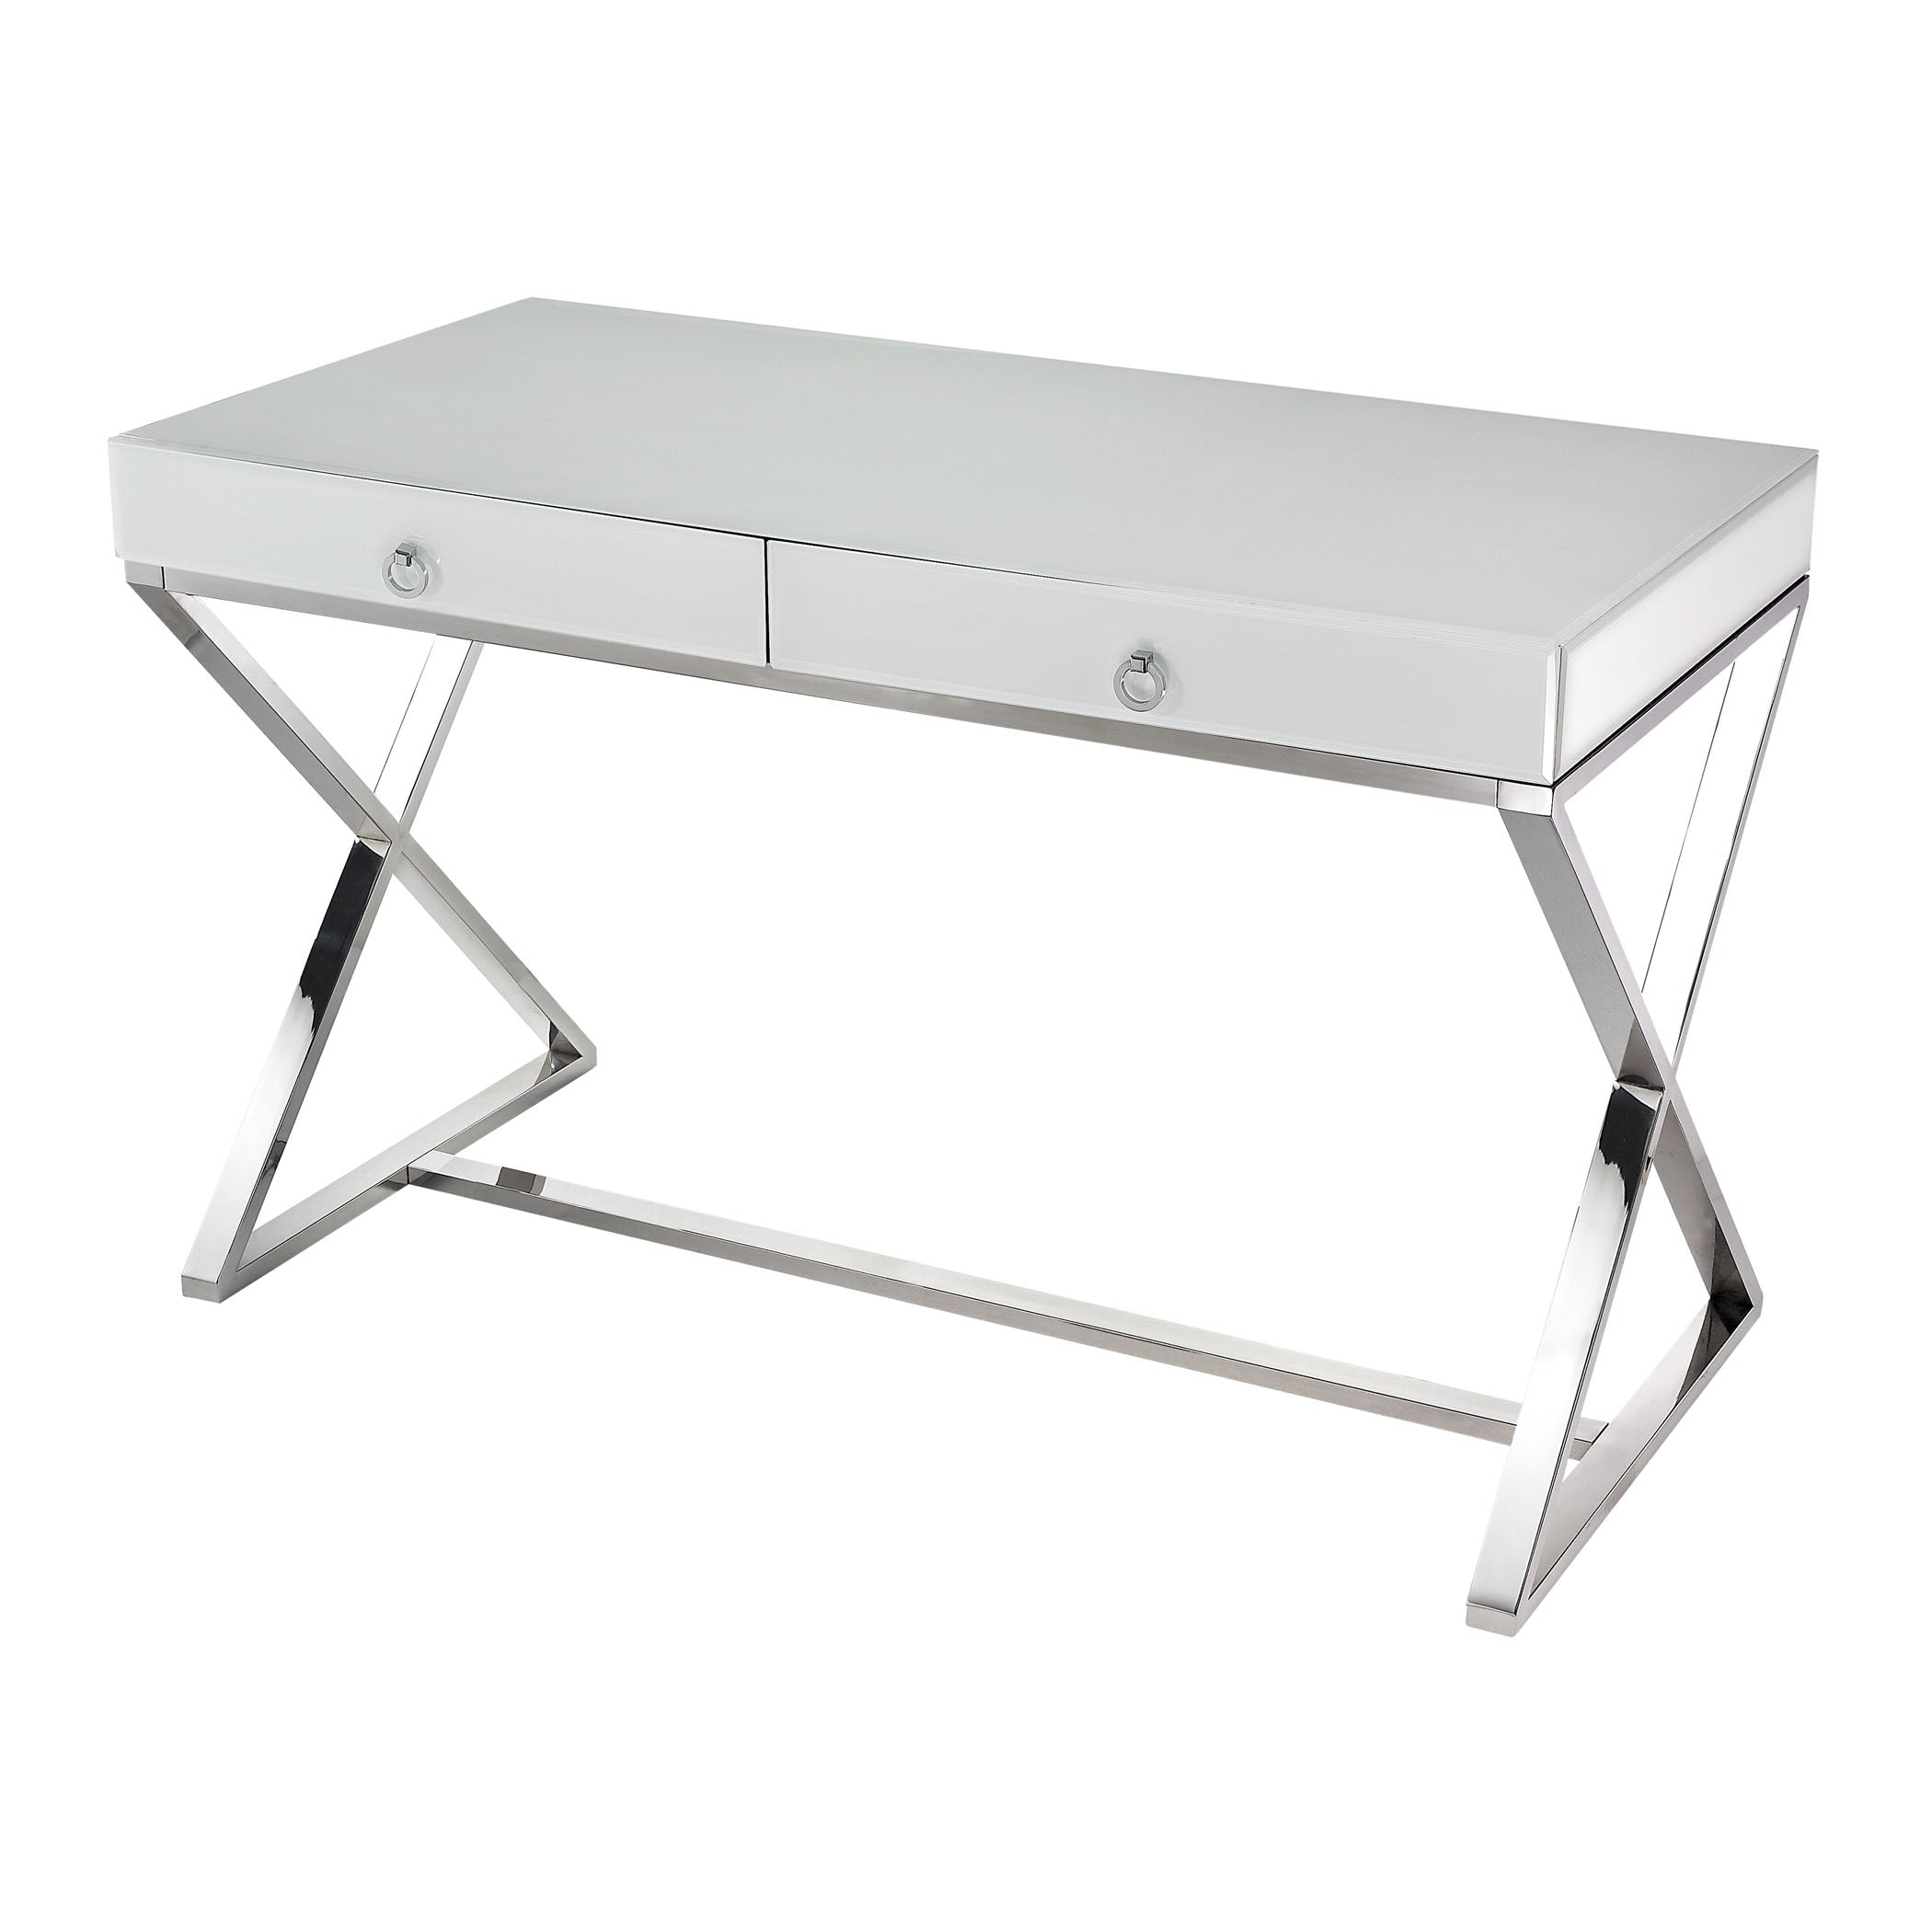 Beautiful Dimond Home  WHITE GLASS DESK  in  Glass, Stainless Steel, Chrome